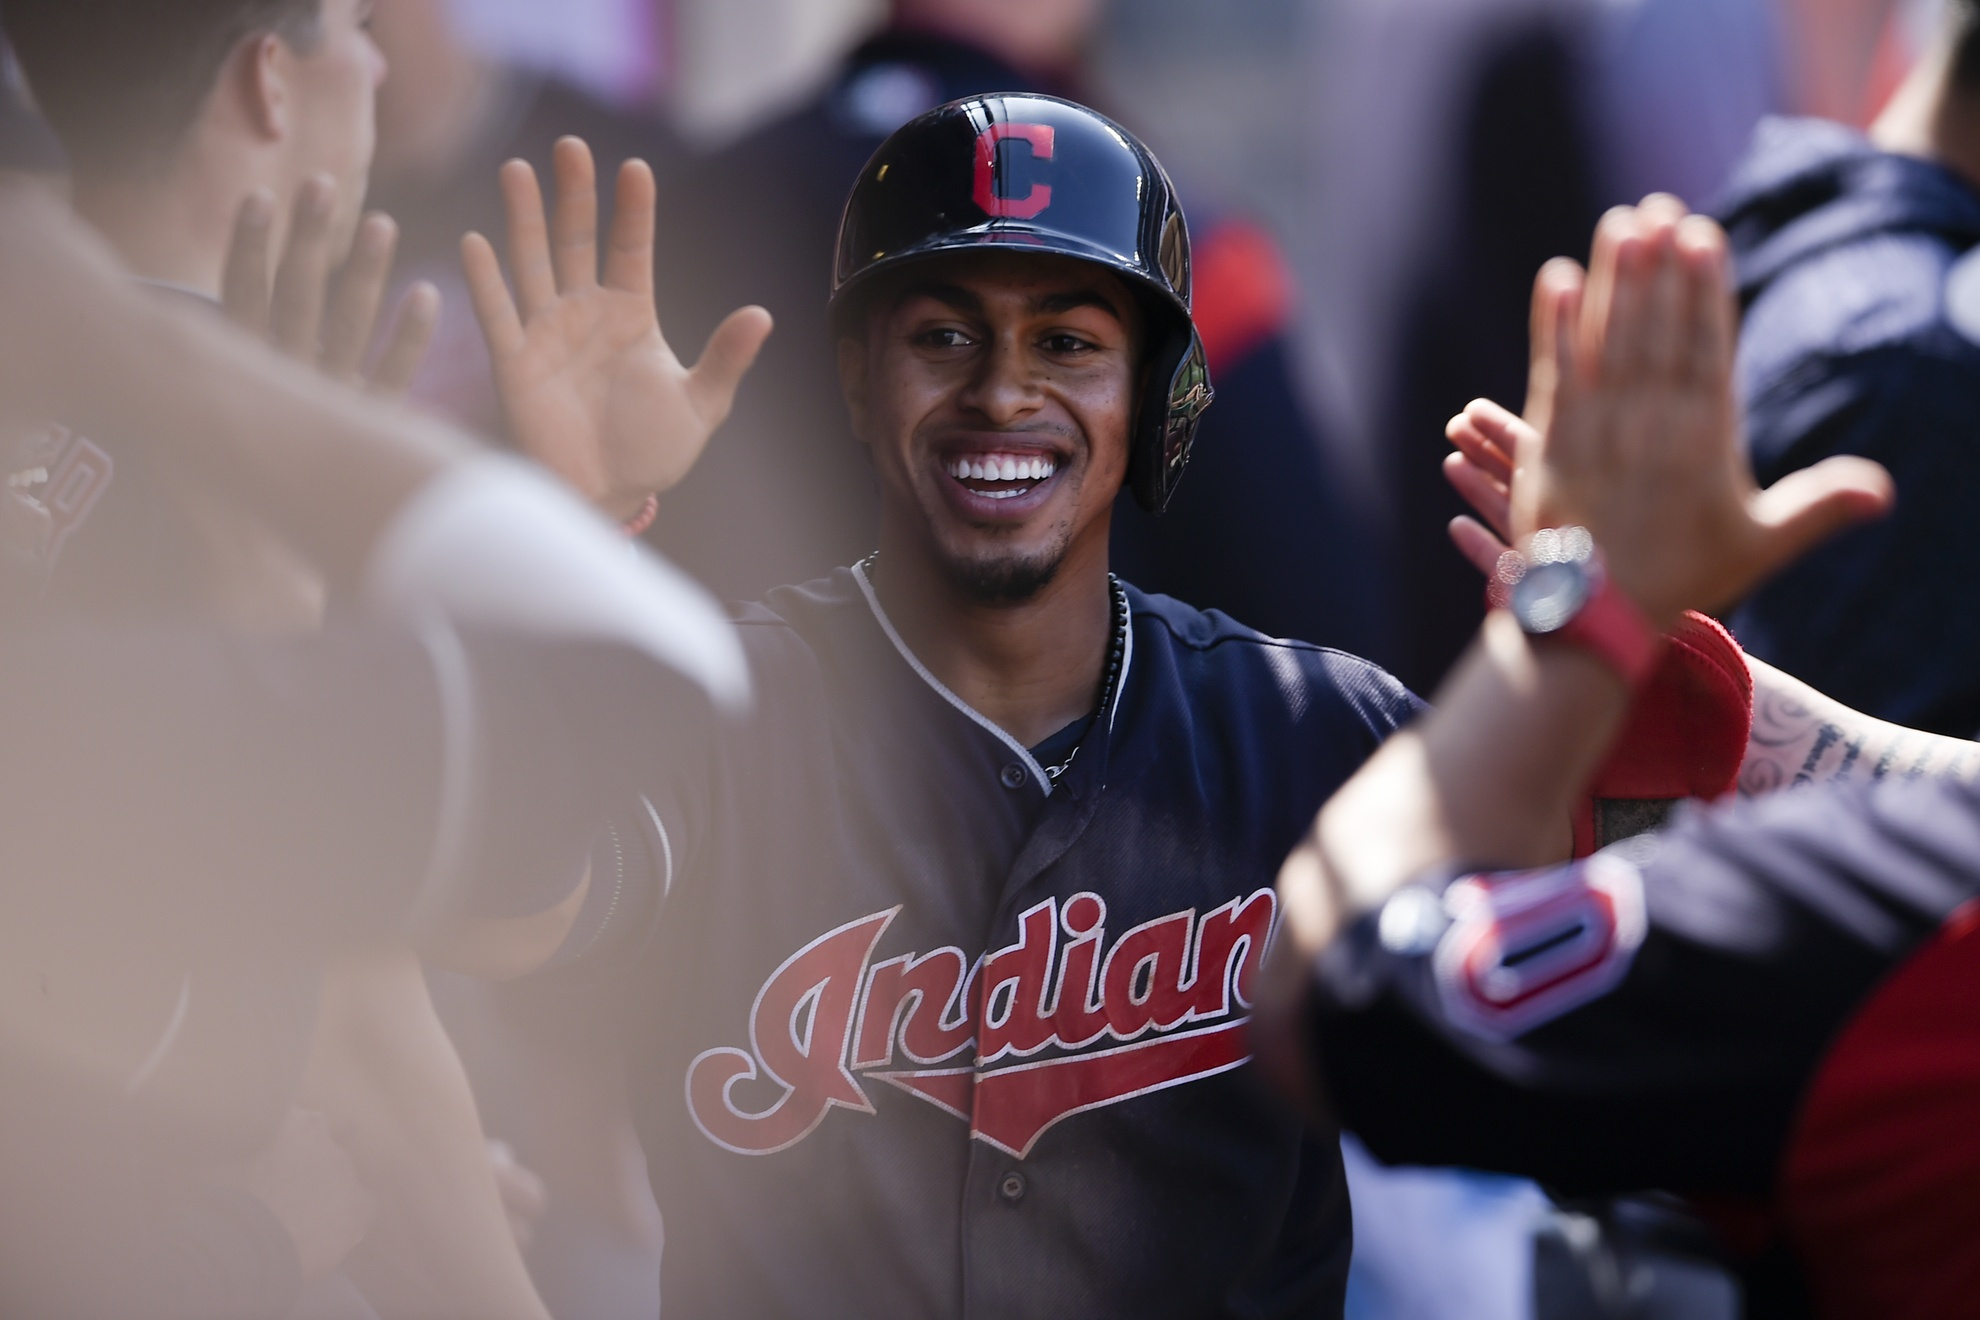 Apr 4, 2018; Anaheim, CA, USA; Cleveland Indians shortstop Francisco Lindor (12) celebrates with the dugout after scoring off an RBI single by second baseman Jason Kipnis (not pictured) during the fifth inning against the Los Angeles Angels at Angel Stadium of Anaheim. Mandatory Credit: Kelvin Kuo-USA TODAY Sports